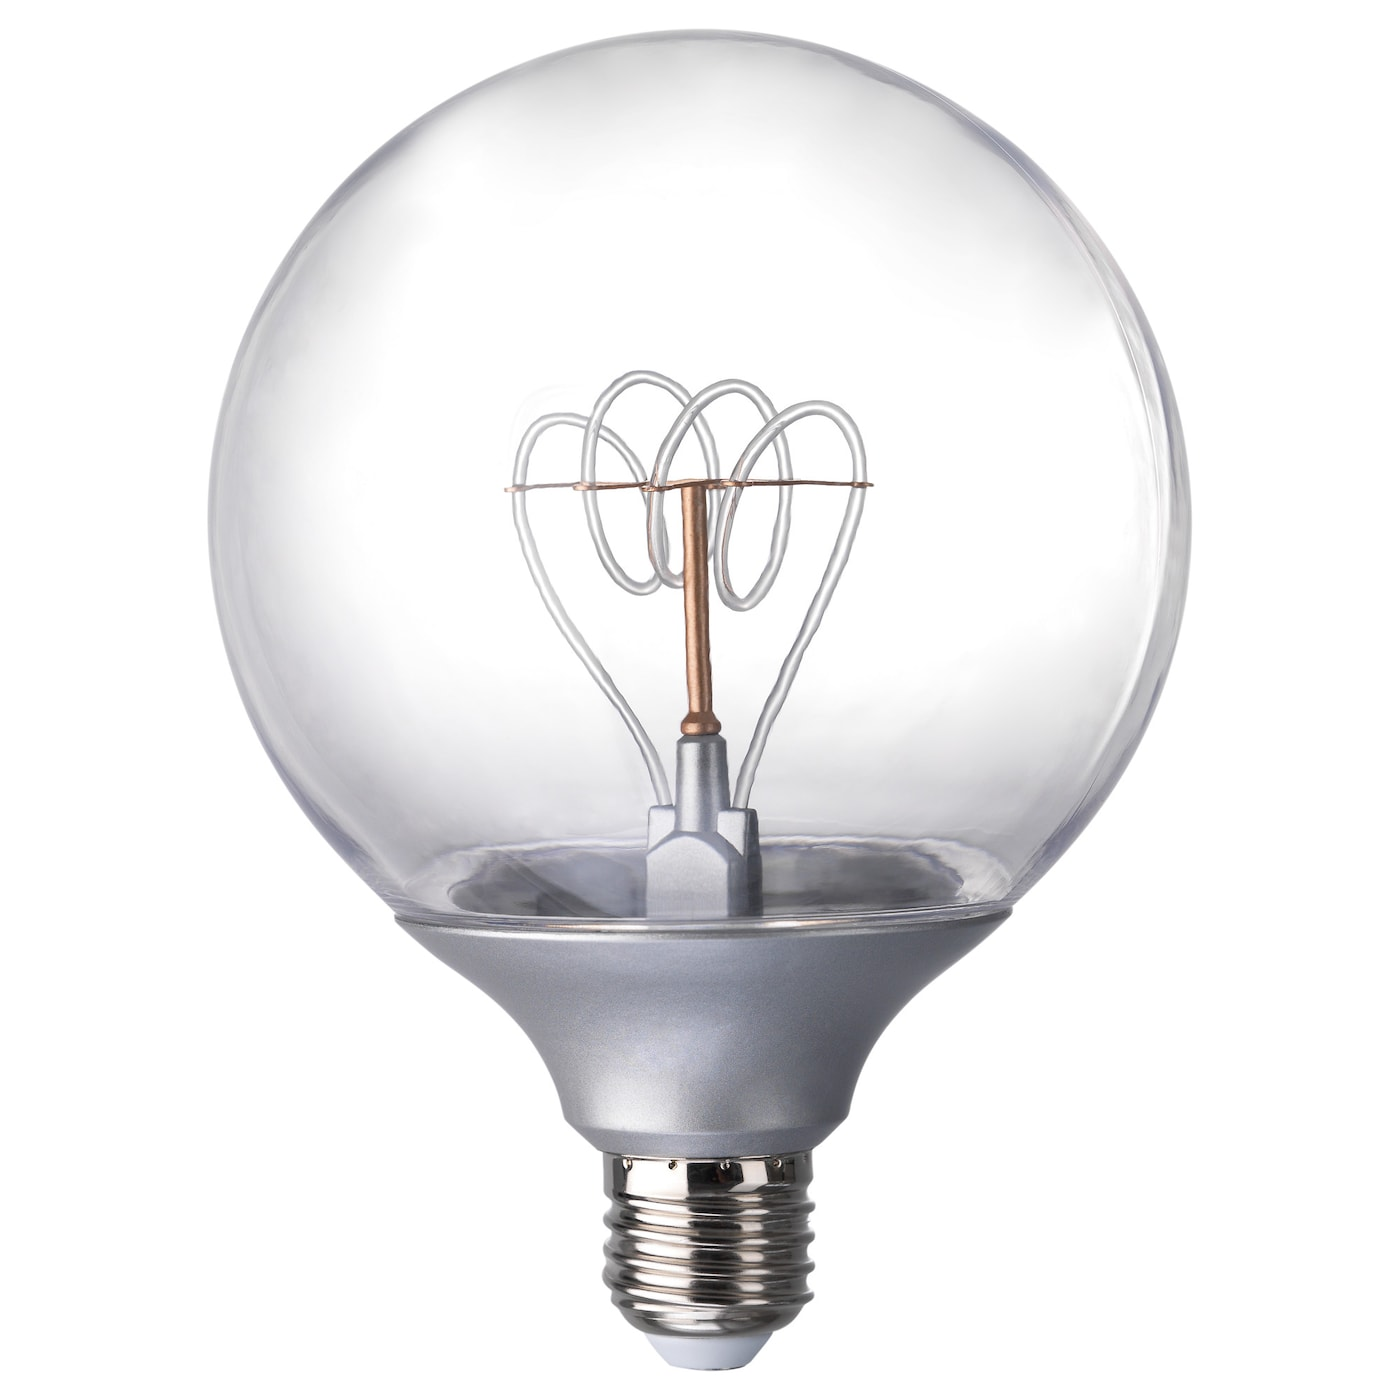 Light bulbs accessories ikea ikea nittio led bulb e27 20 lumen gives a nice decorative light parisarafo Gallery